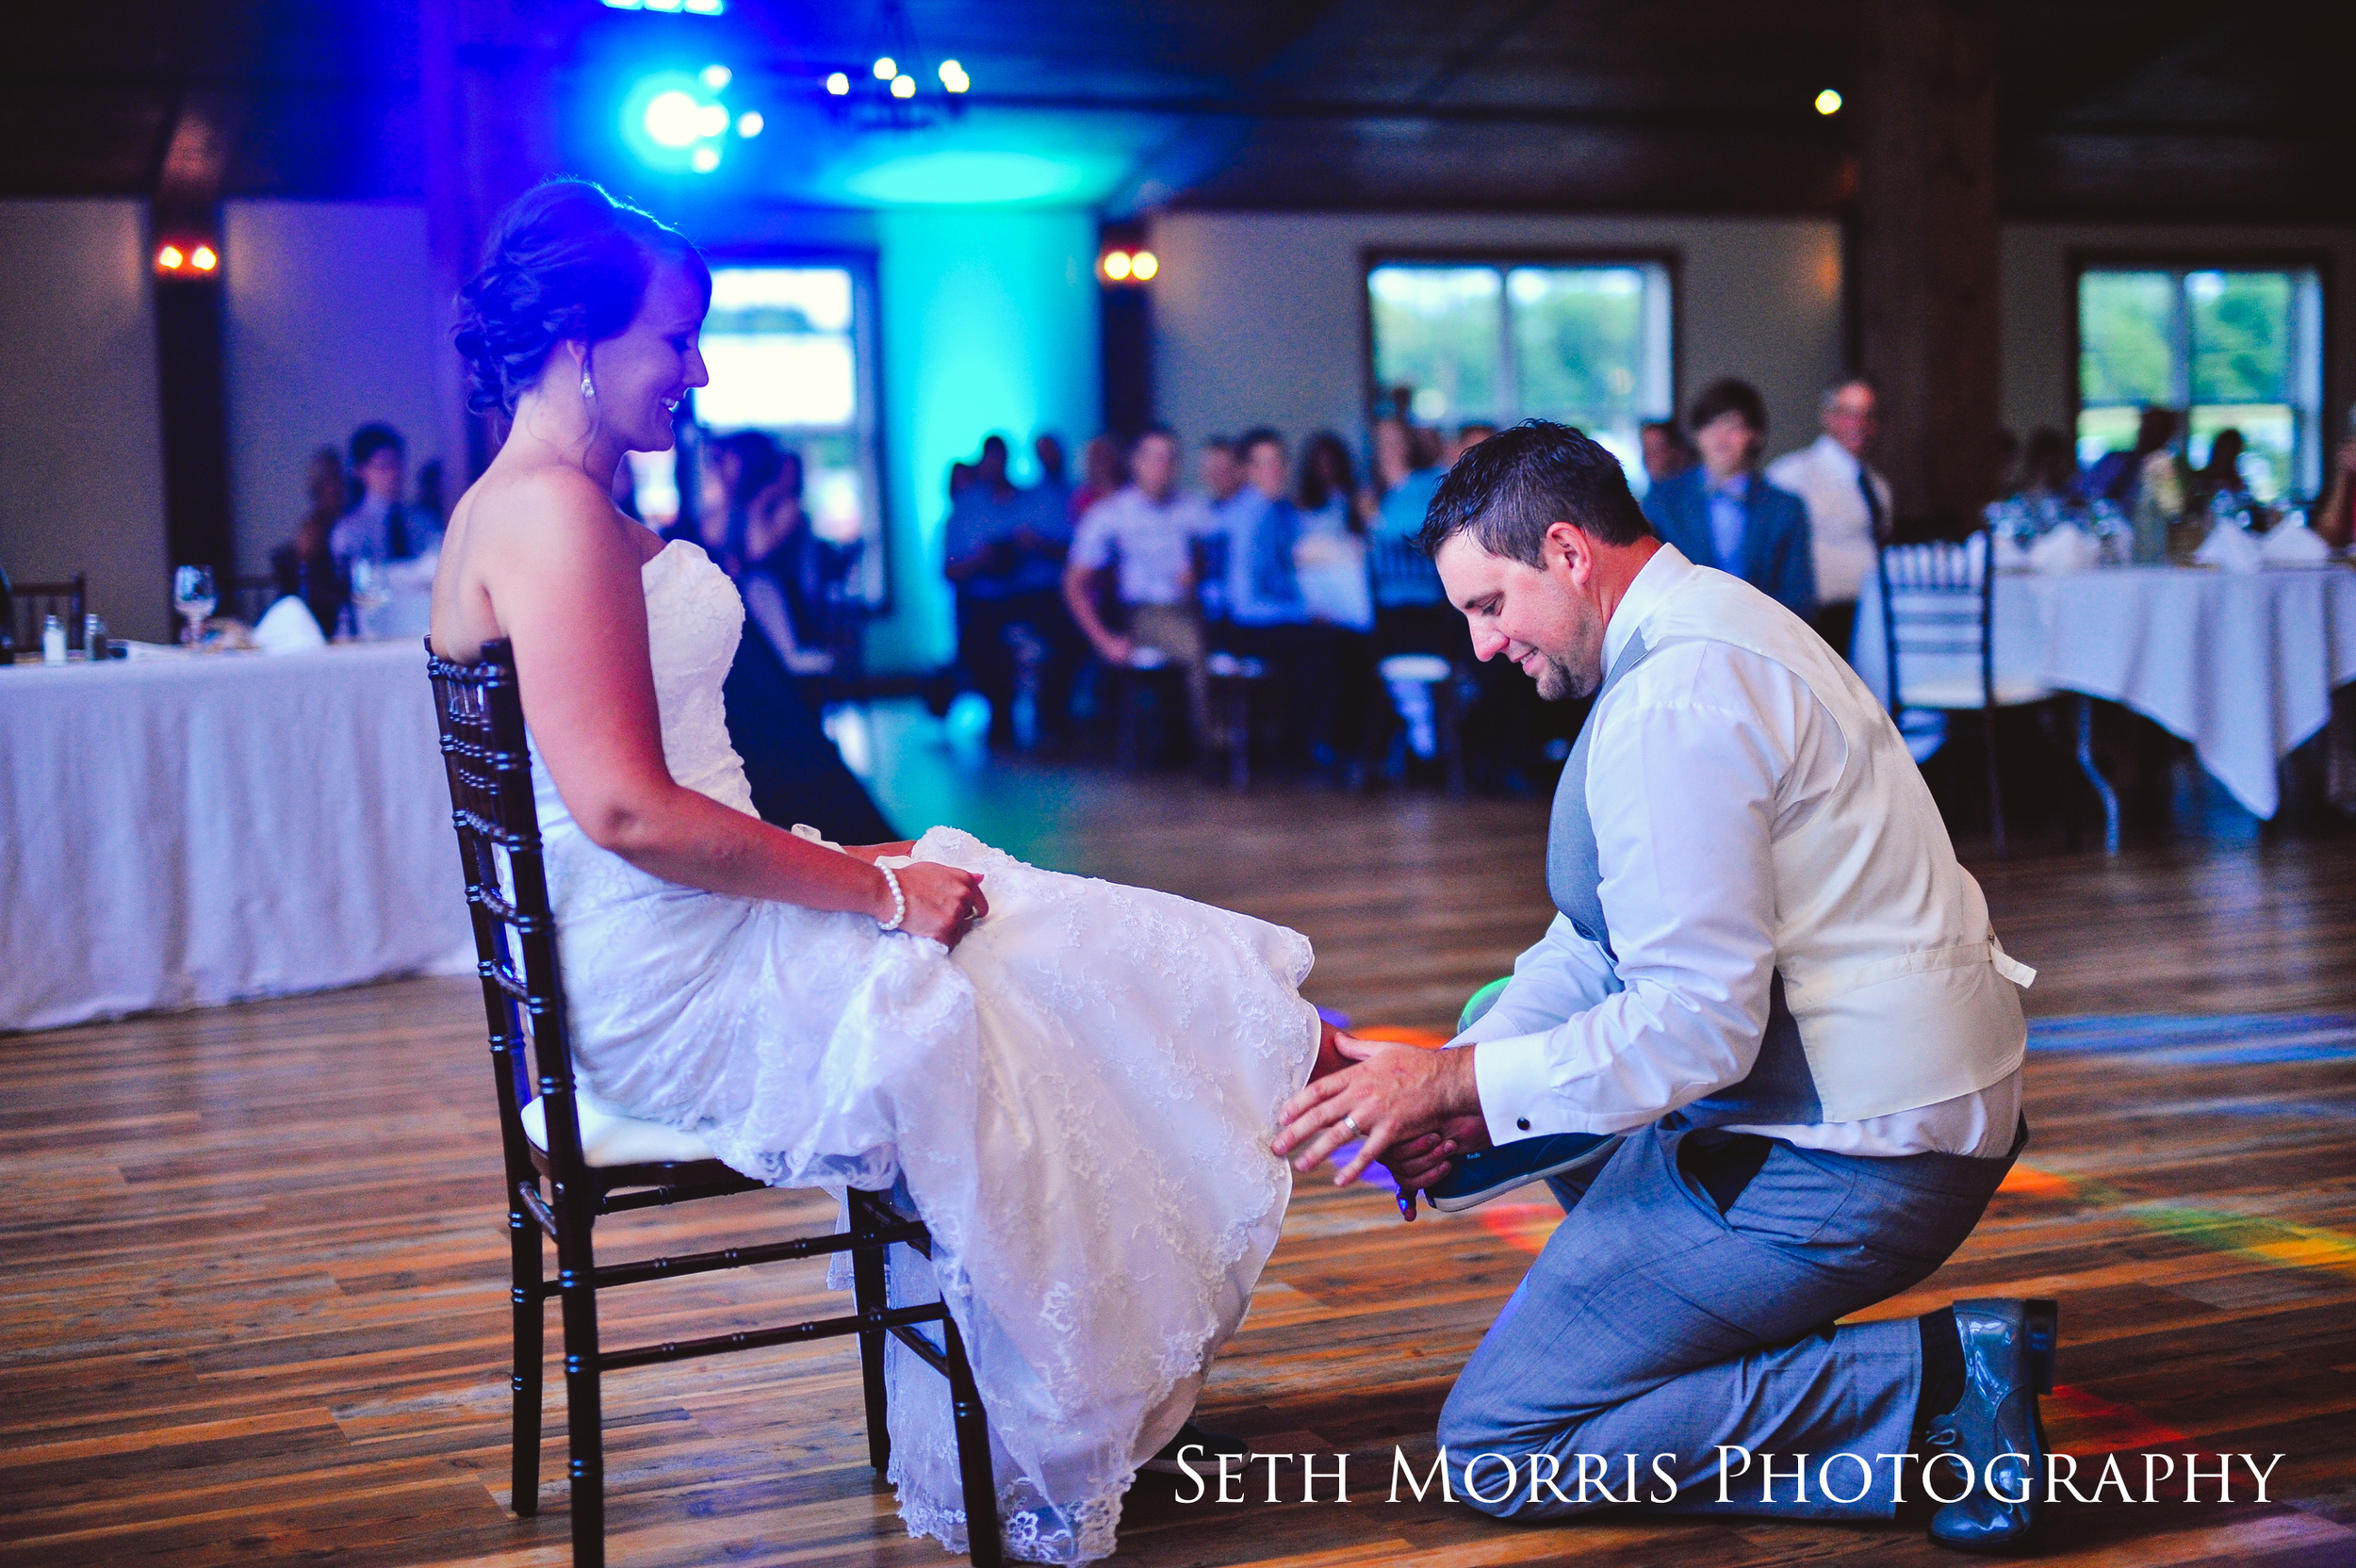 hornbaker-barn-wedding-photo-princeton-photographer-85.jpg